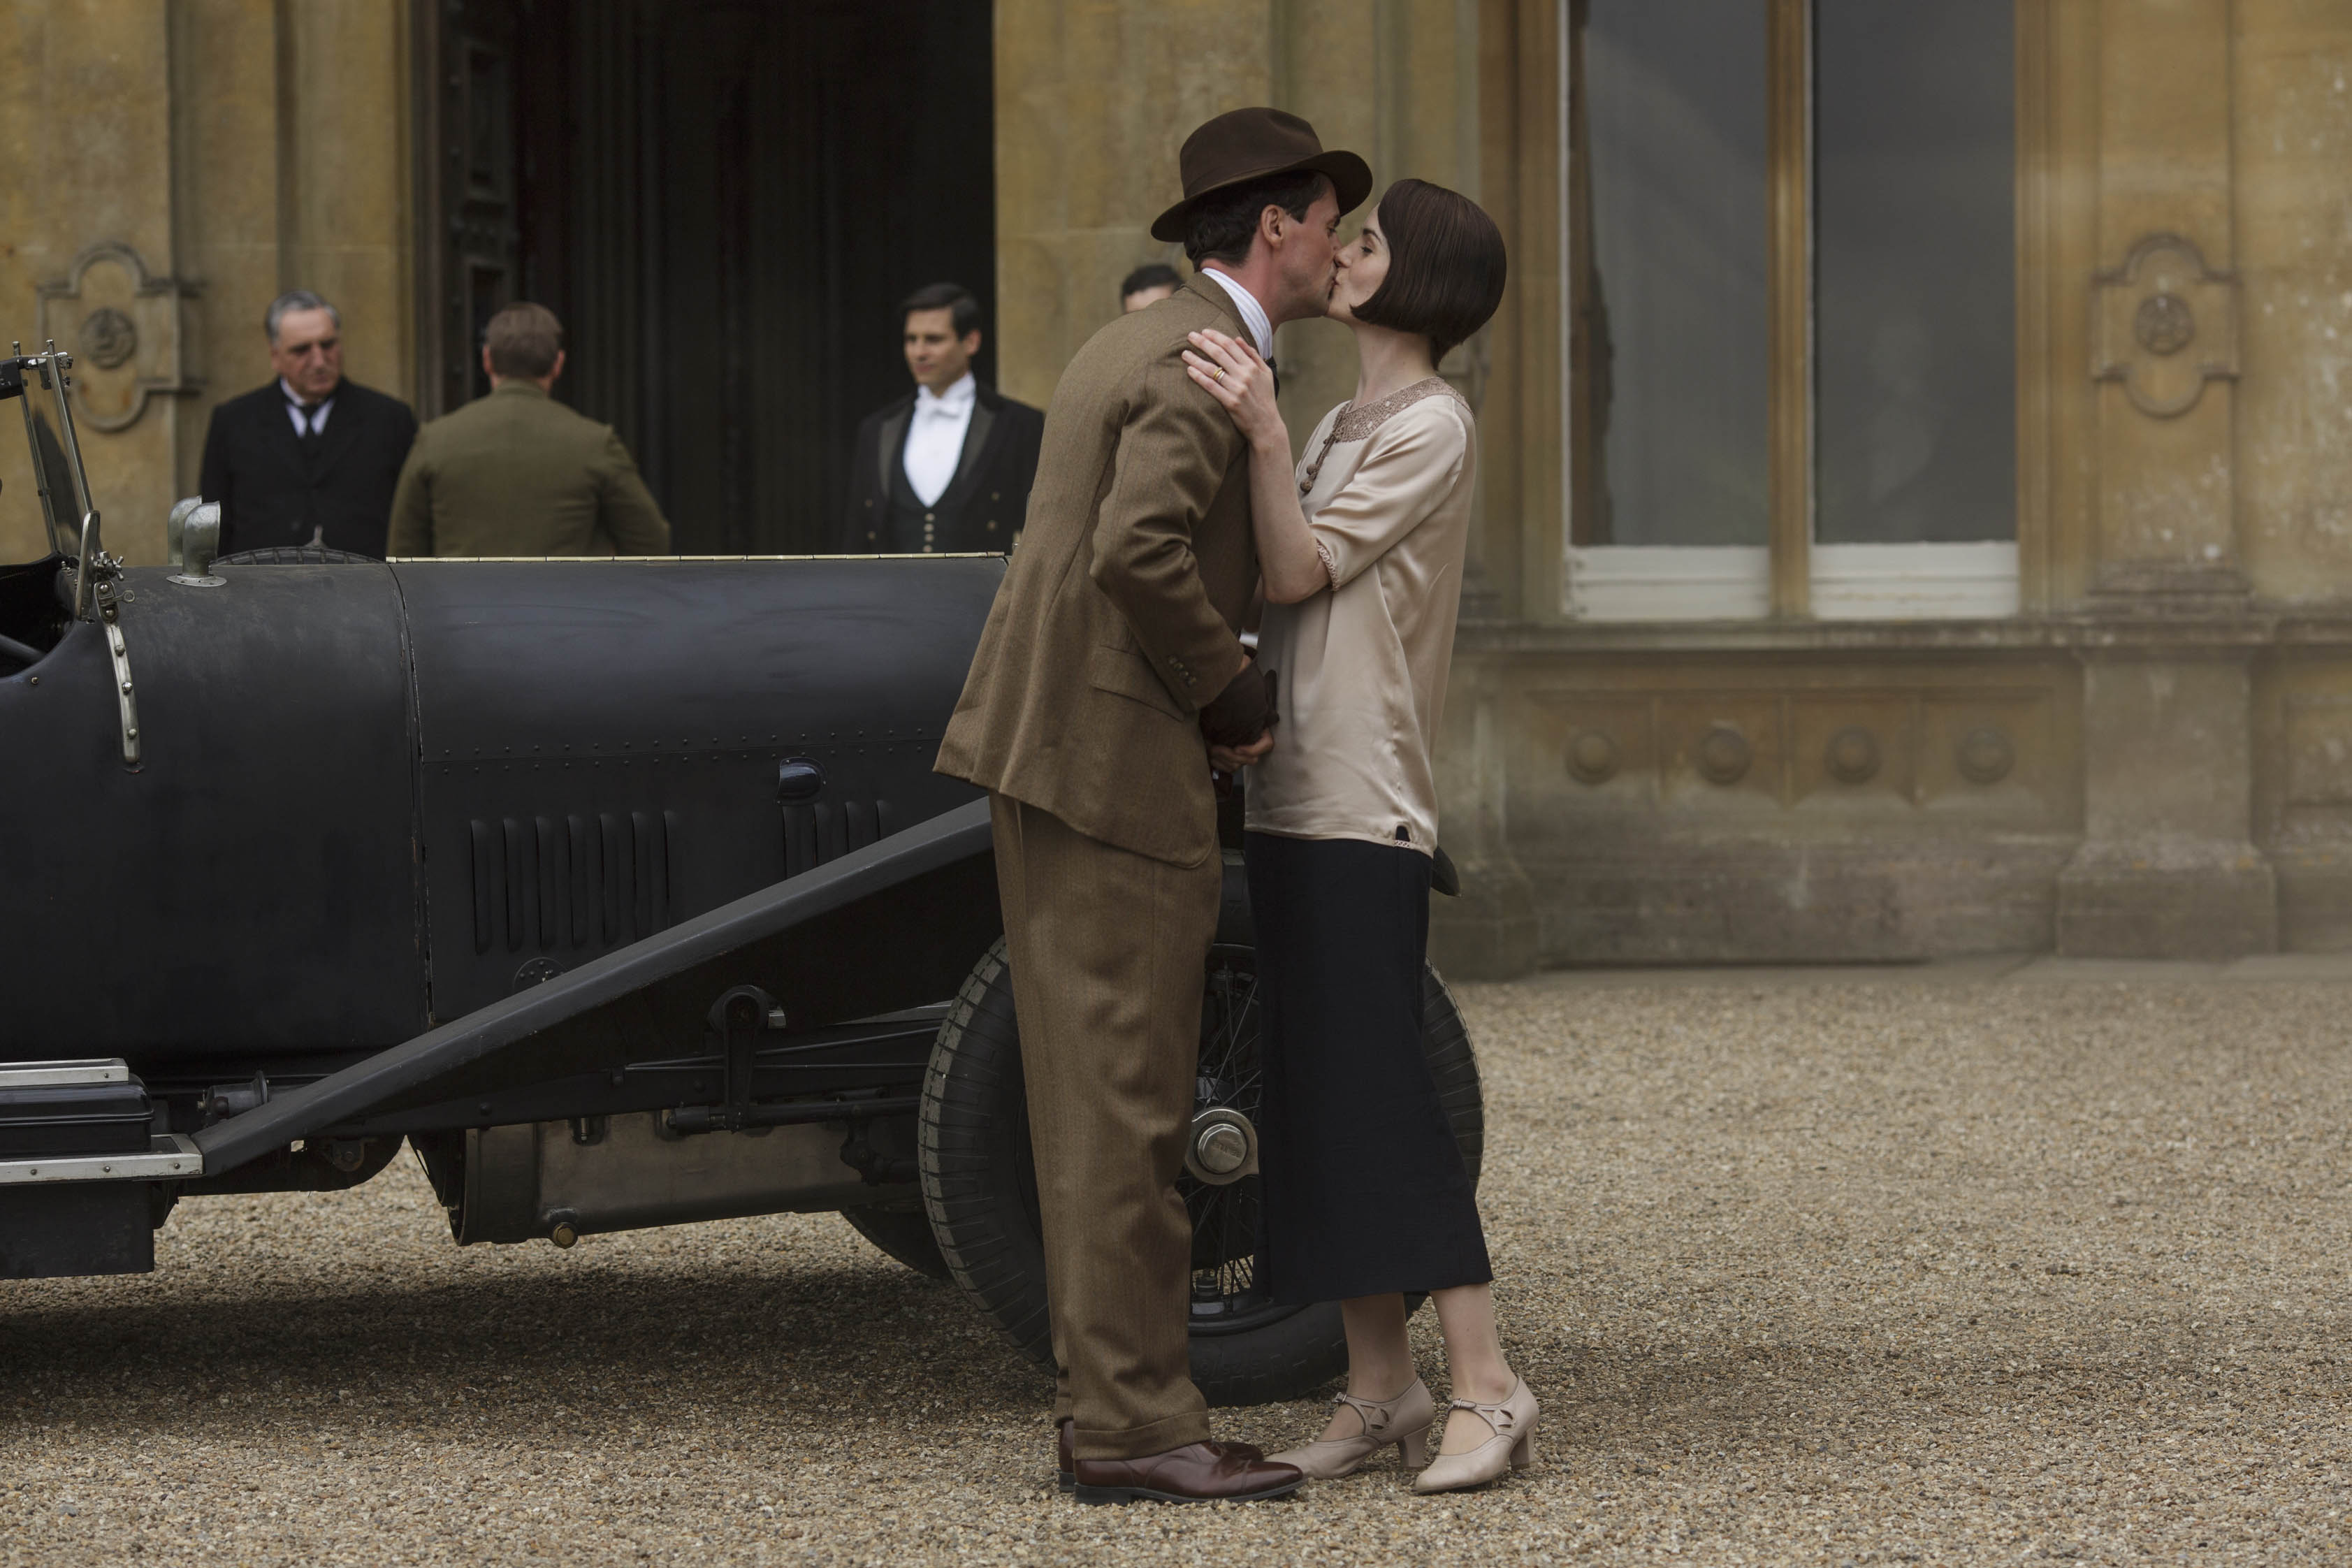 EMBARGOED UNTIL 8th December 2015 Downton Abbey | Christmas Final Episode 2015 We return to the sumptuous setting of Downton Abbey for the finale of this internationally acclaimed hit drama series. As our time with the Crawleys draws to a close, we see what becomes of them all. The family and the servants, who work for them, remain inseparably interlinked as they face new challenges and begin forging different paths in a rapidly changing world. Photographer: Nick Briggs MATTHEW GOODE as Henry Talbot and MICHELLE DOCKERY as Lady Mary Crawley